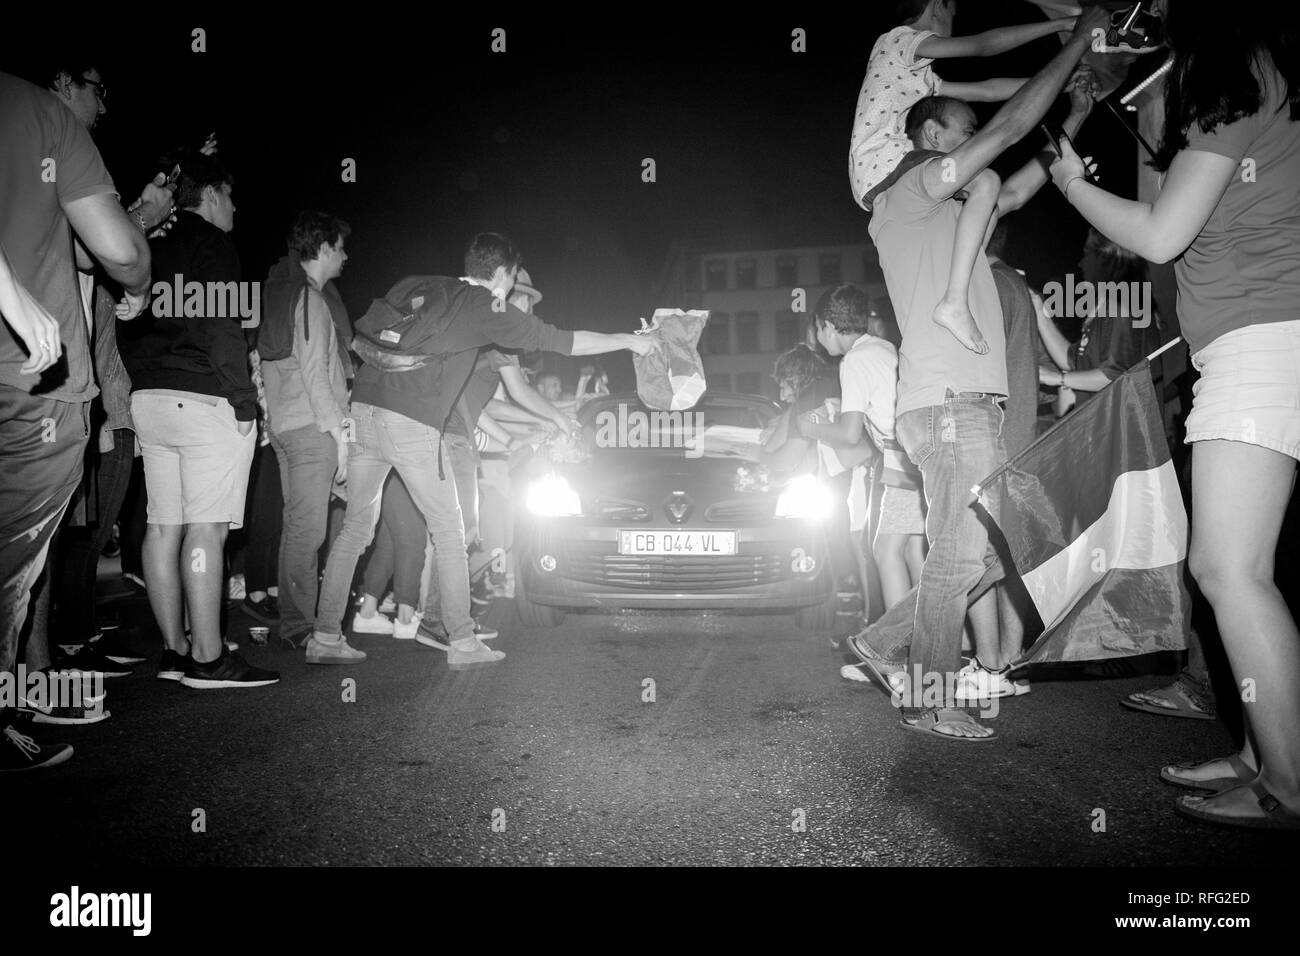 STRASBOURG, FRANCE - JULY 10, 2018: Rodeo with cars - unique French celebration after the victory of France qualify for the final of the 2018 FIFA World Cup after their victory - Stock Image